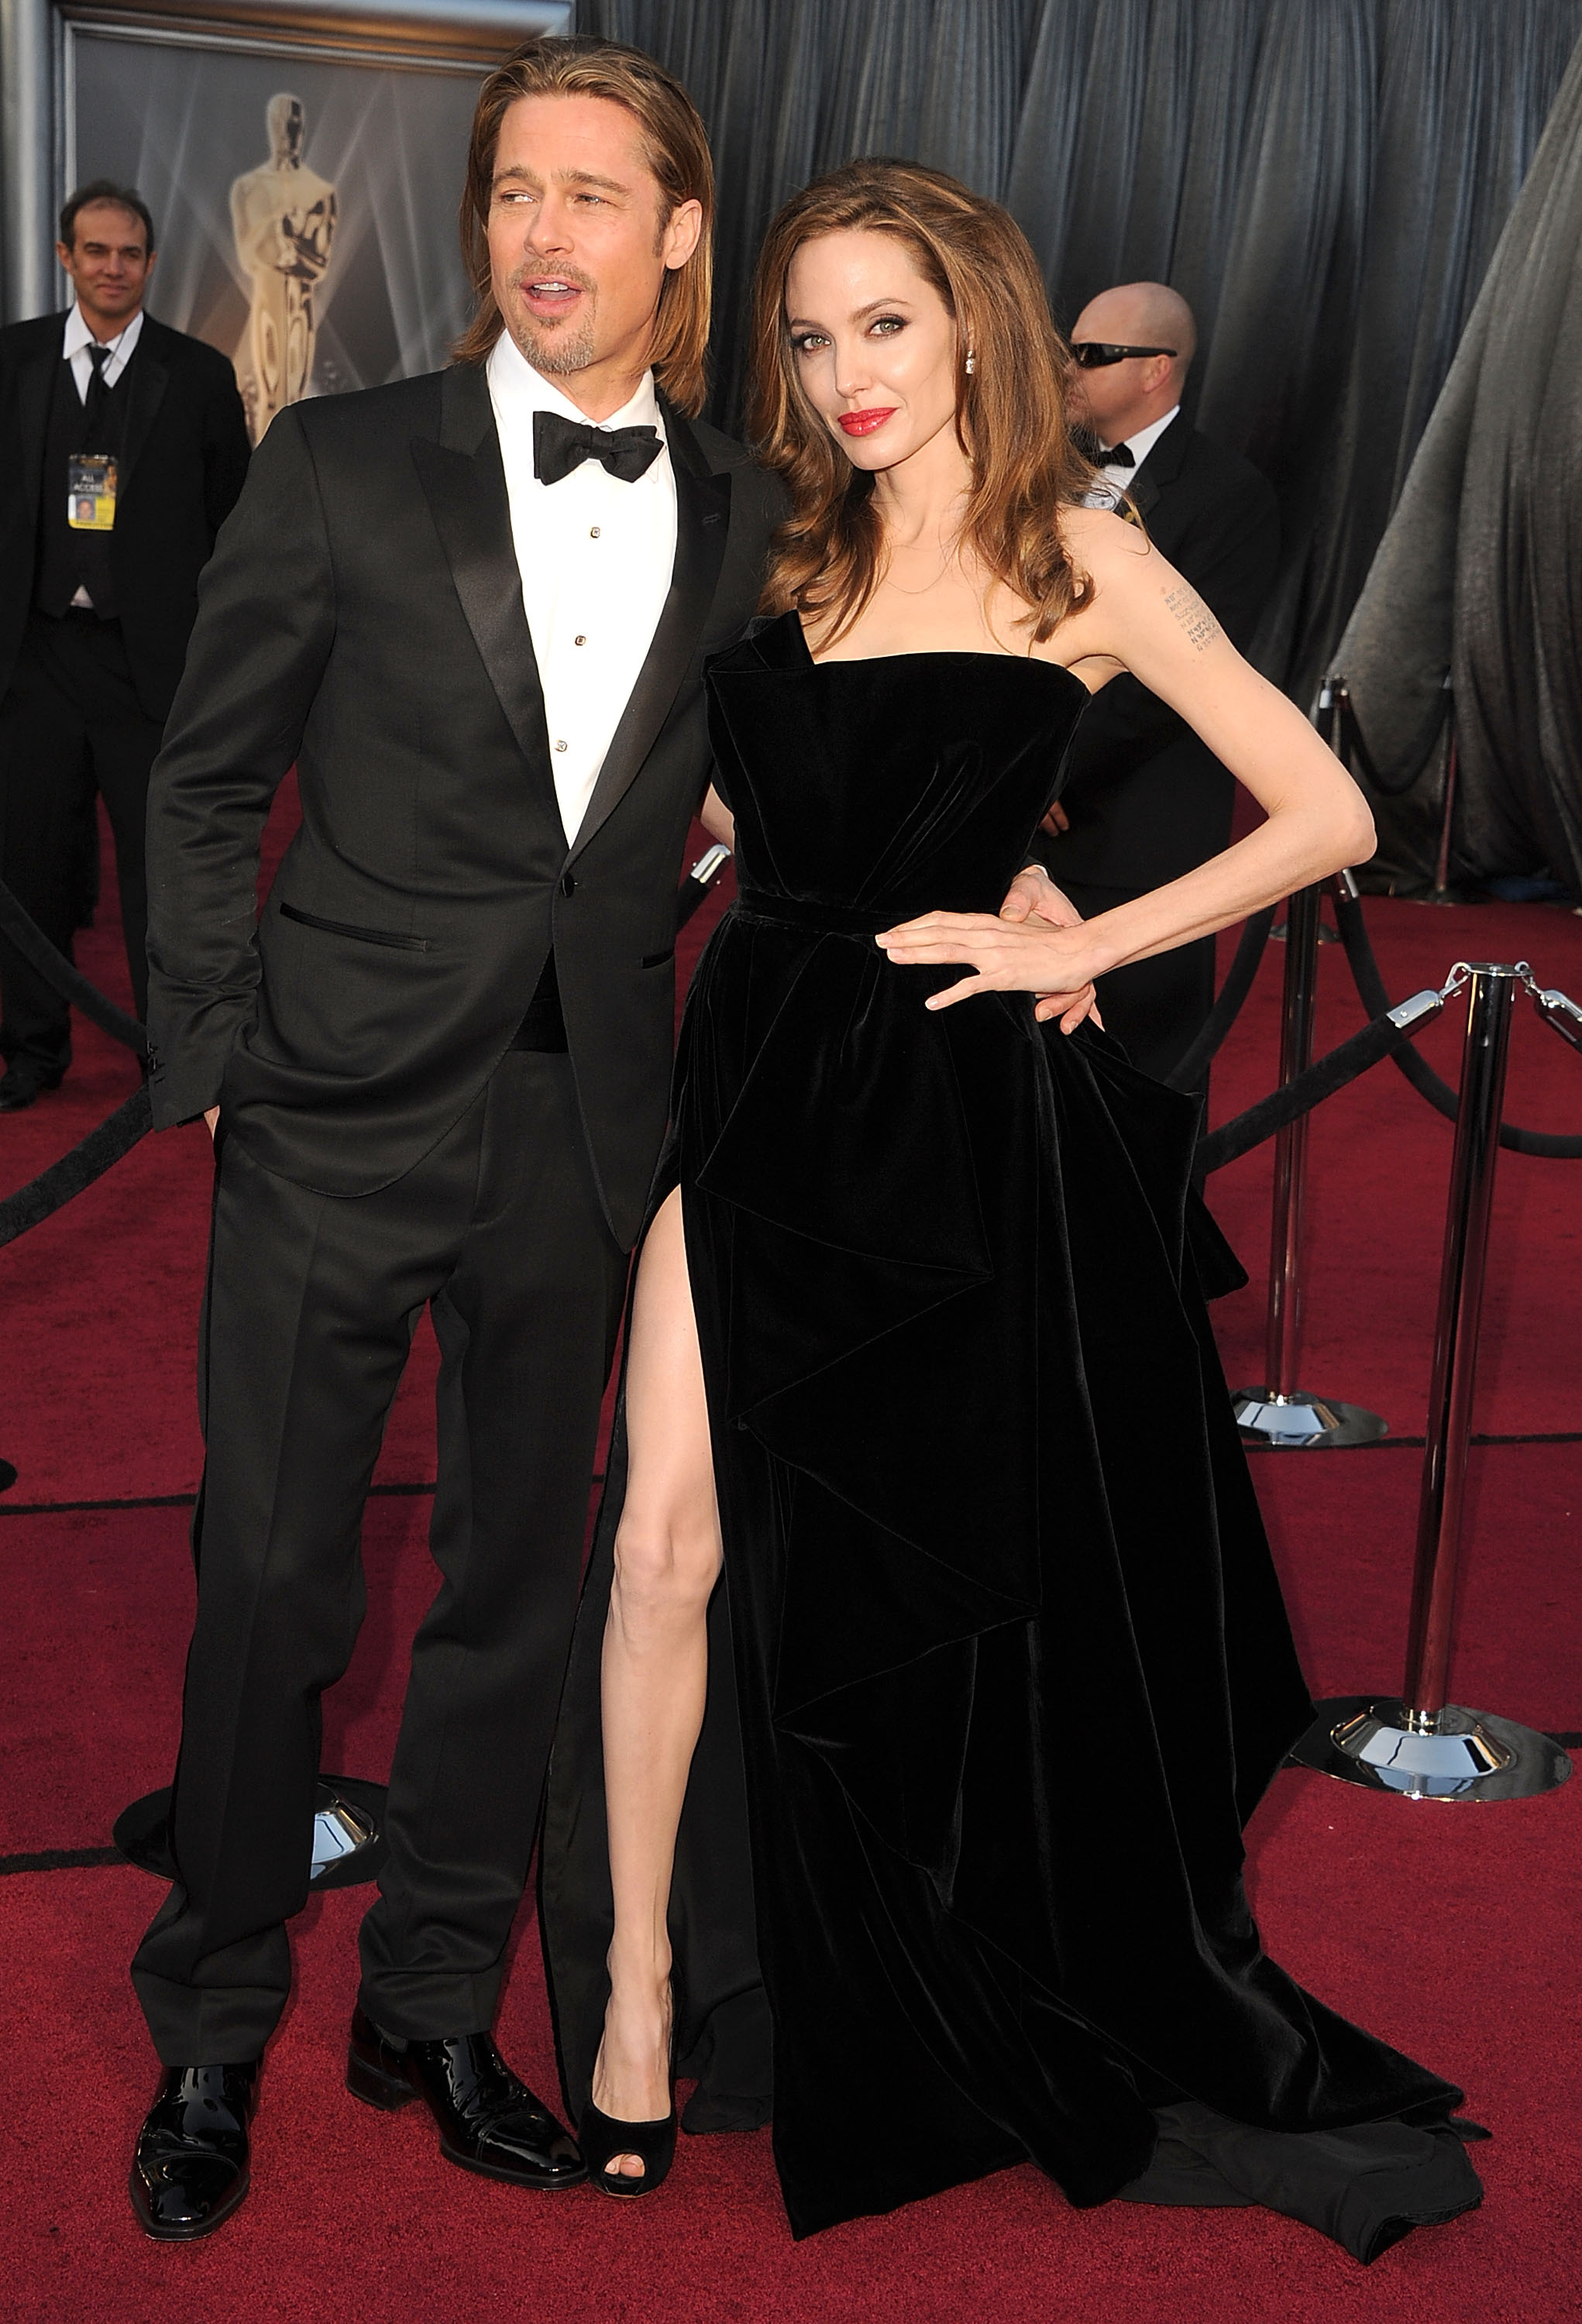 Angelina Jolie's right leg was a popular topic at the 2012 Oscar Awards.